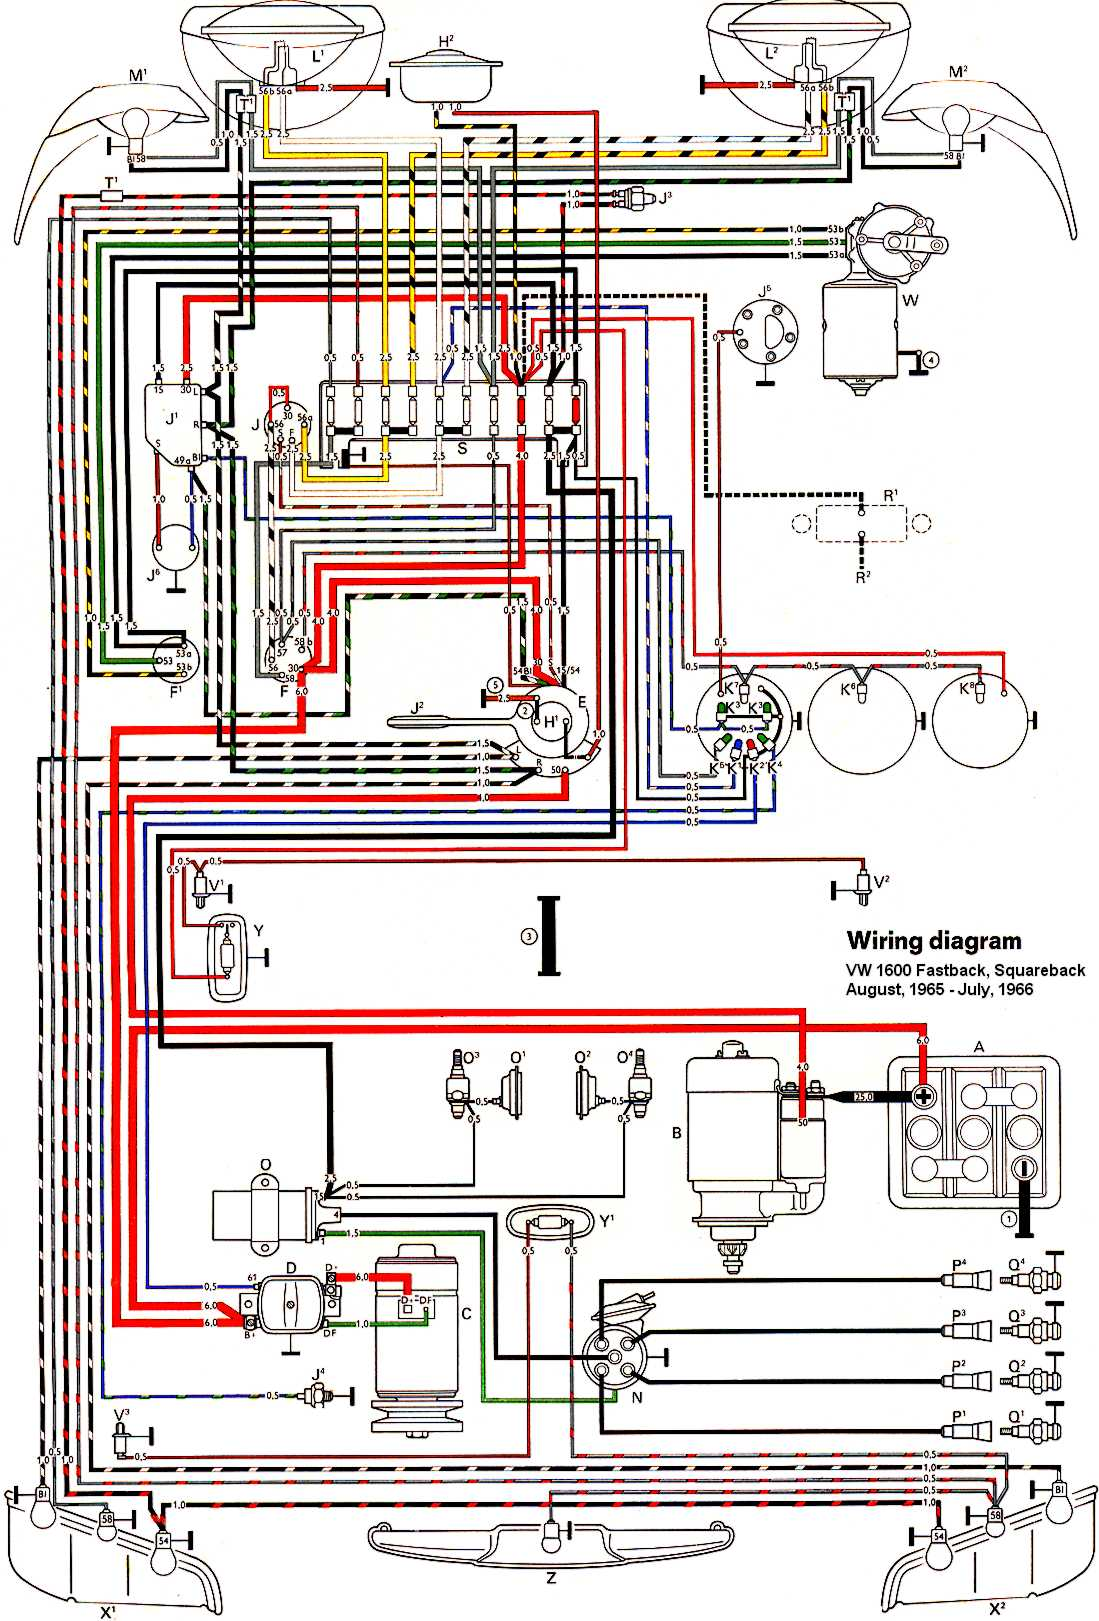 type3_1600_66 thesamba com type 3 wiring diagrams vw wiring diagram at gsmportal.co